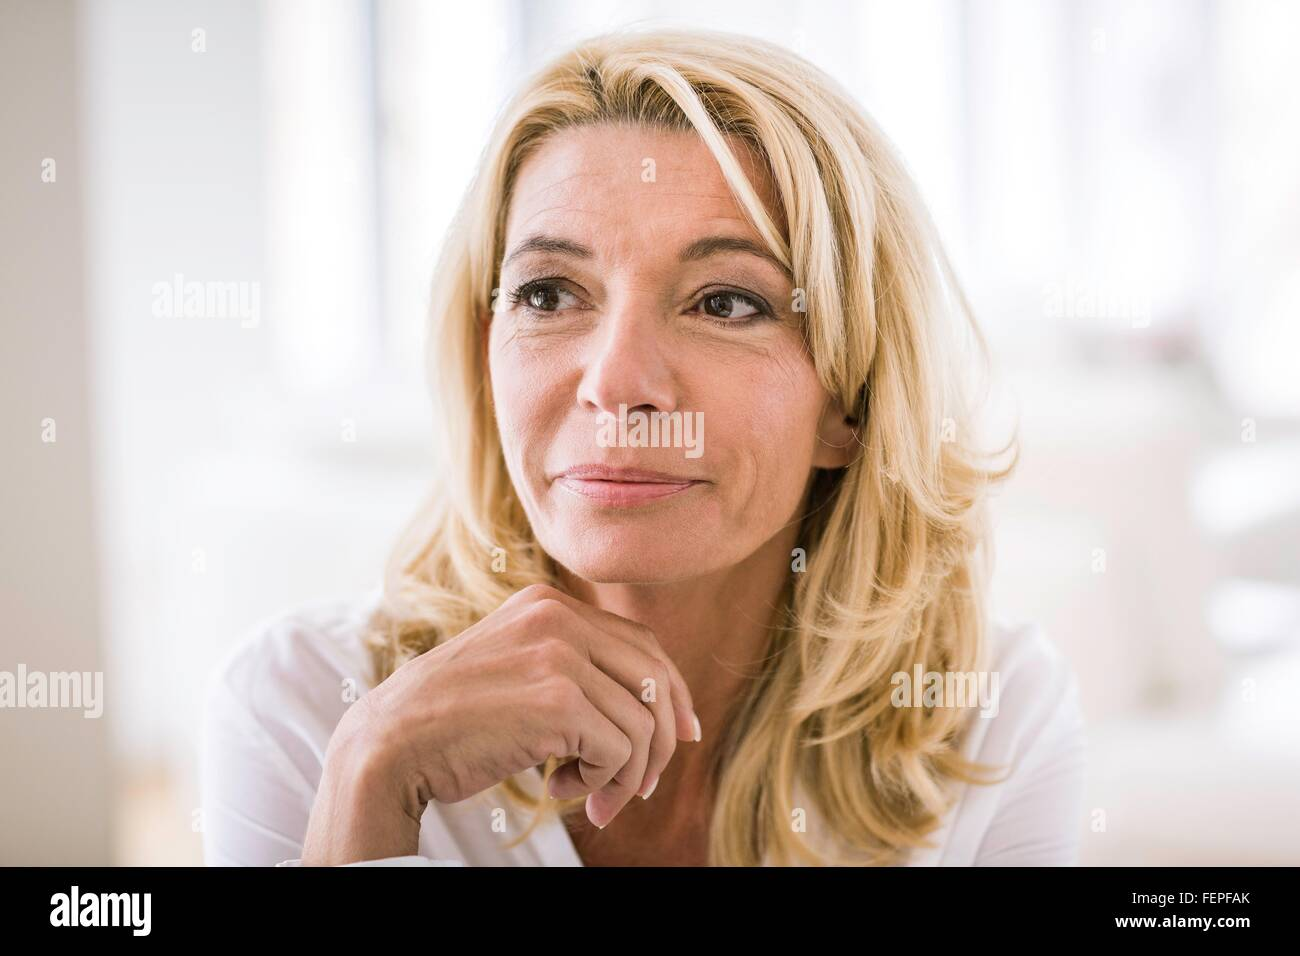 Portrait of blonde haired woman looking away - Stock Image